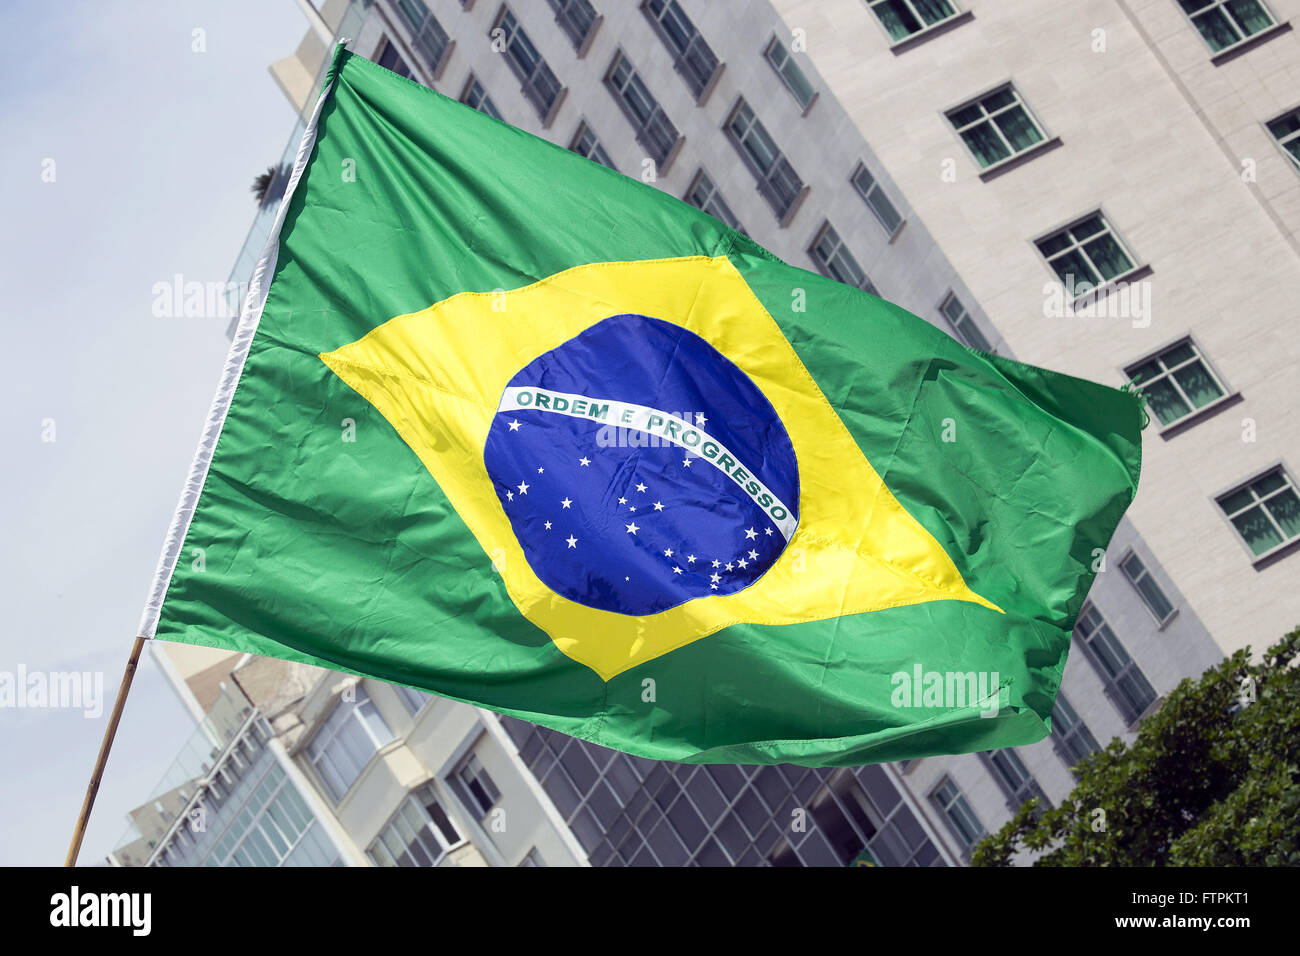 Brazil flag during a protest against corruption and against the government of President Dilma Rousseff - Stock Image